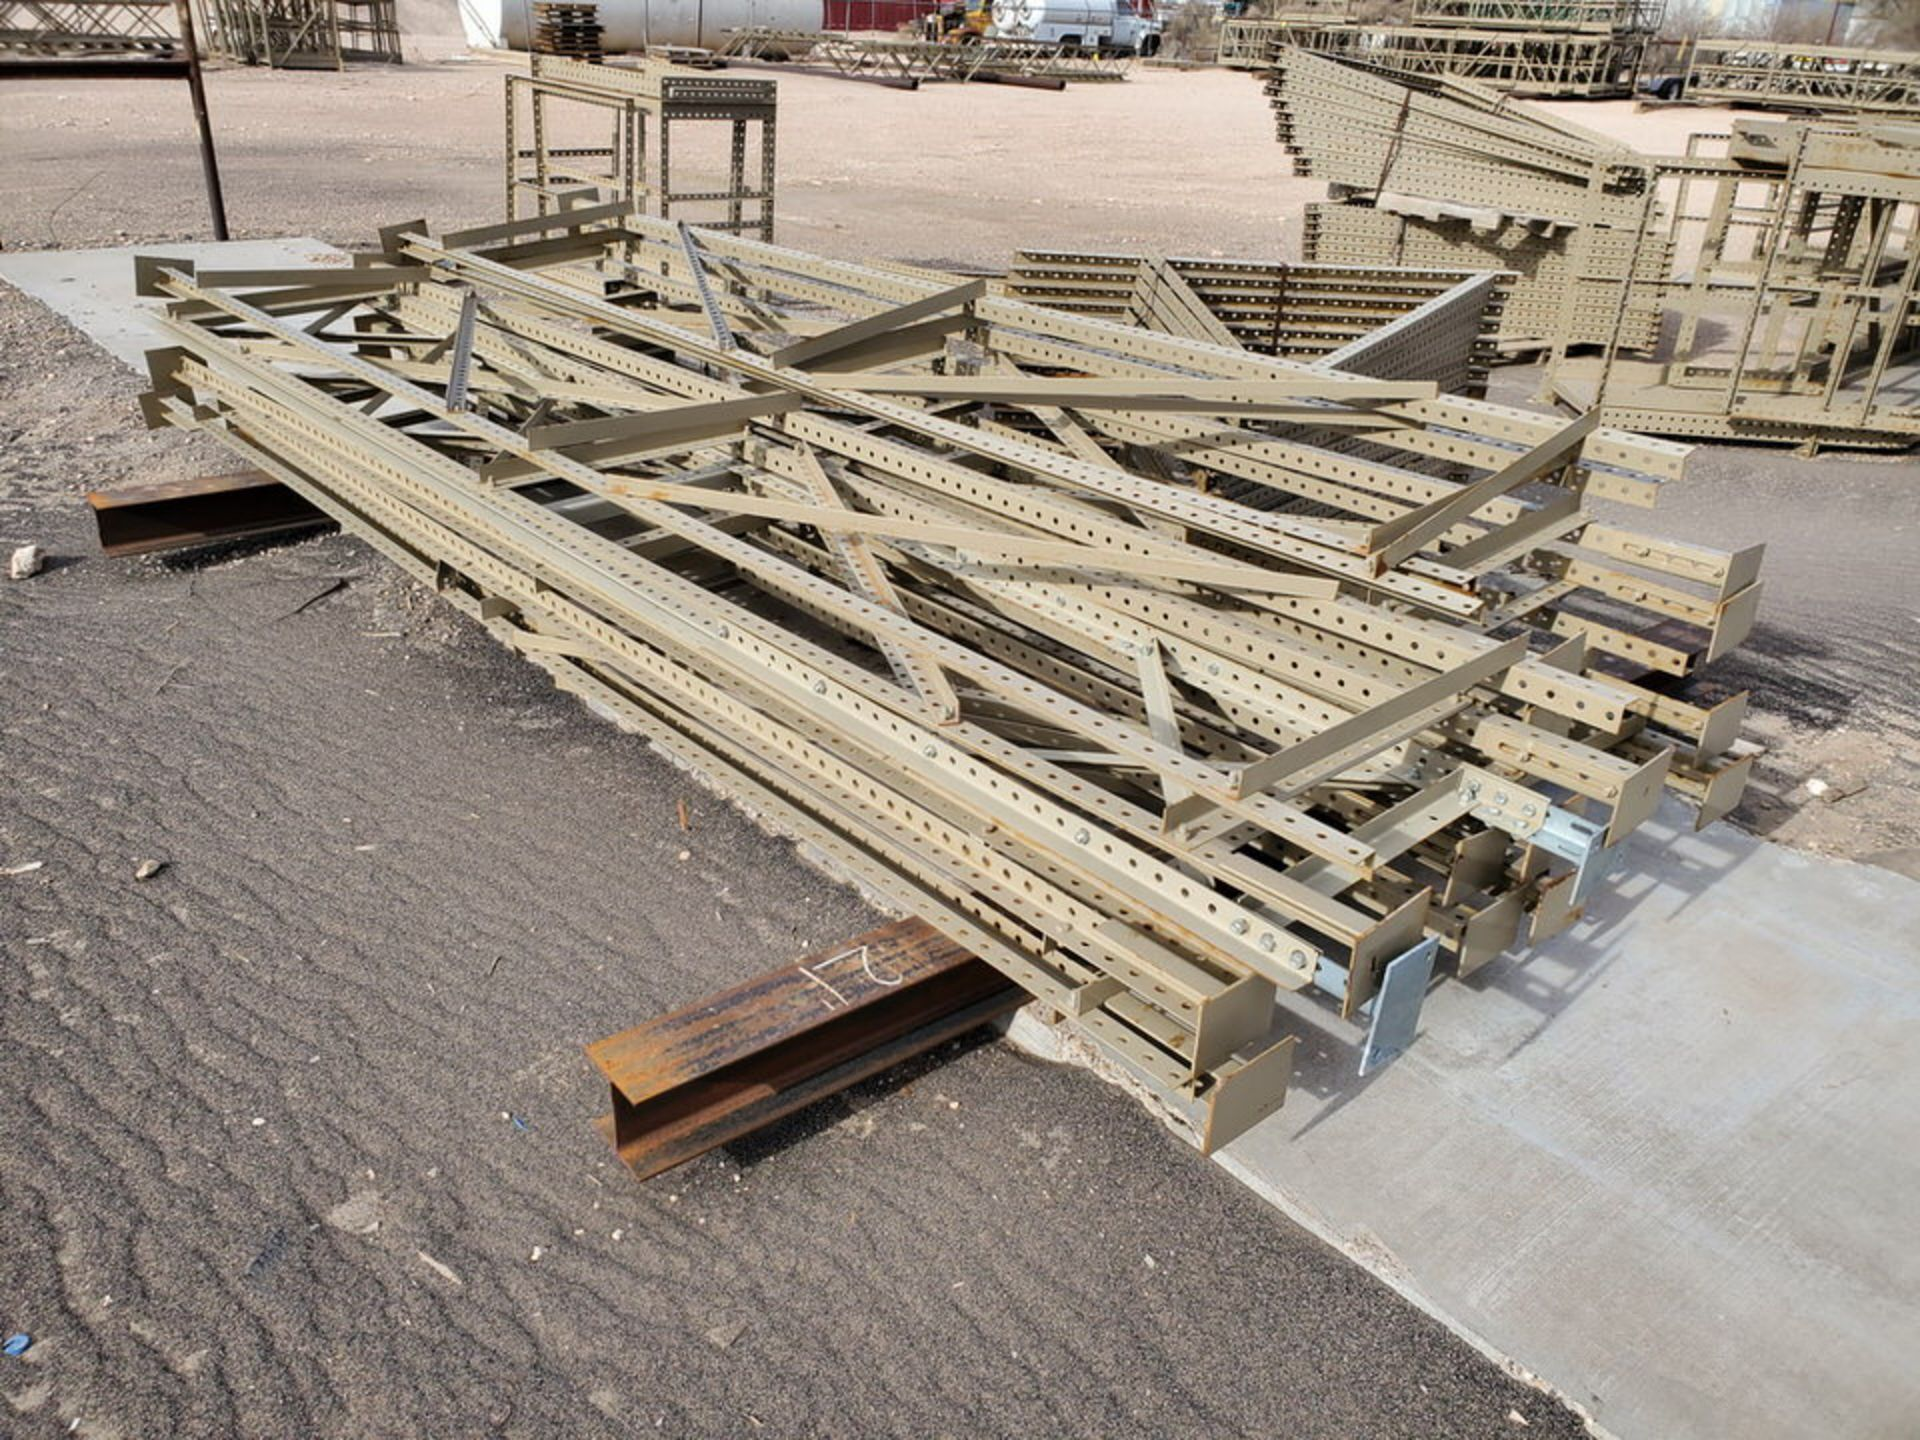 Disassembled Catwalk Sections - Image 9 of 20